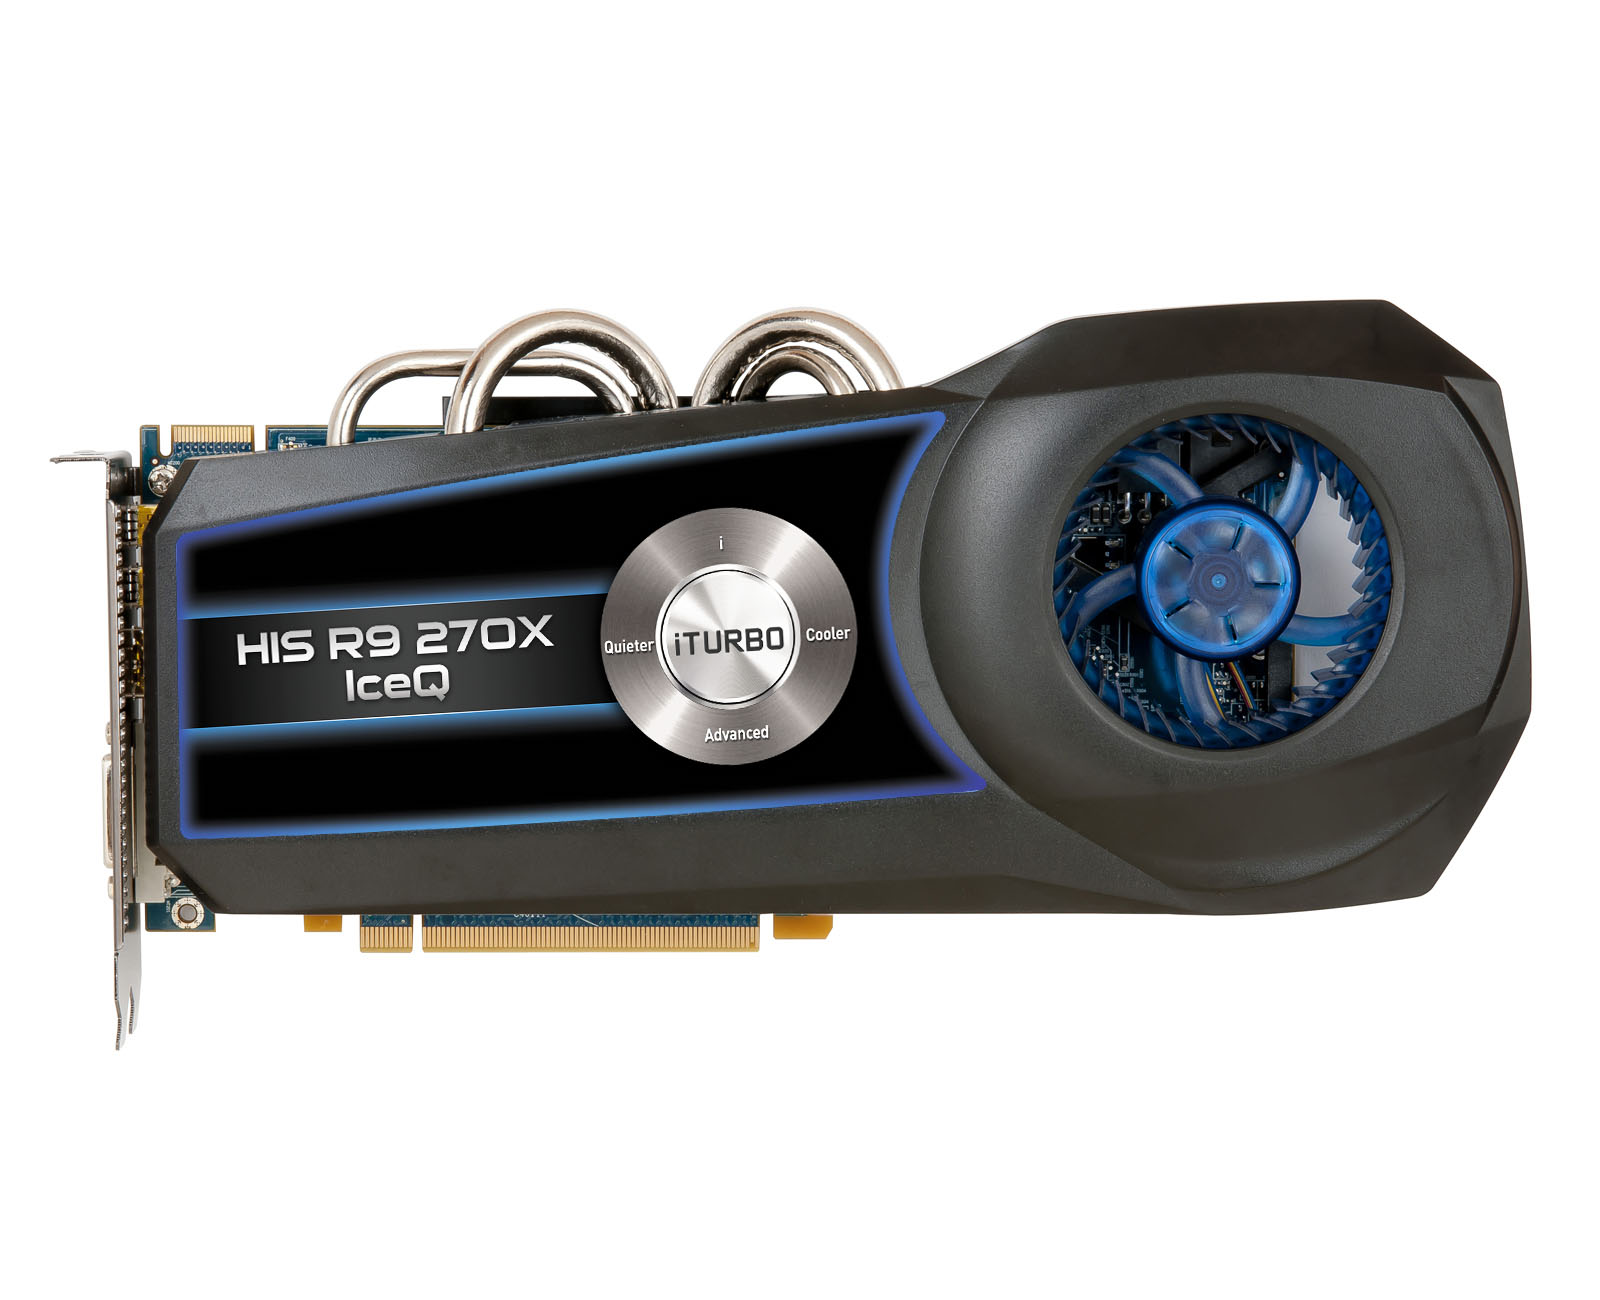 HIS R9 270X IceQ Boost Clock 2GB GDDR5 PCI-E DLDVI-I/HDMI/2xMini DP